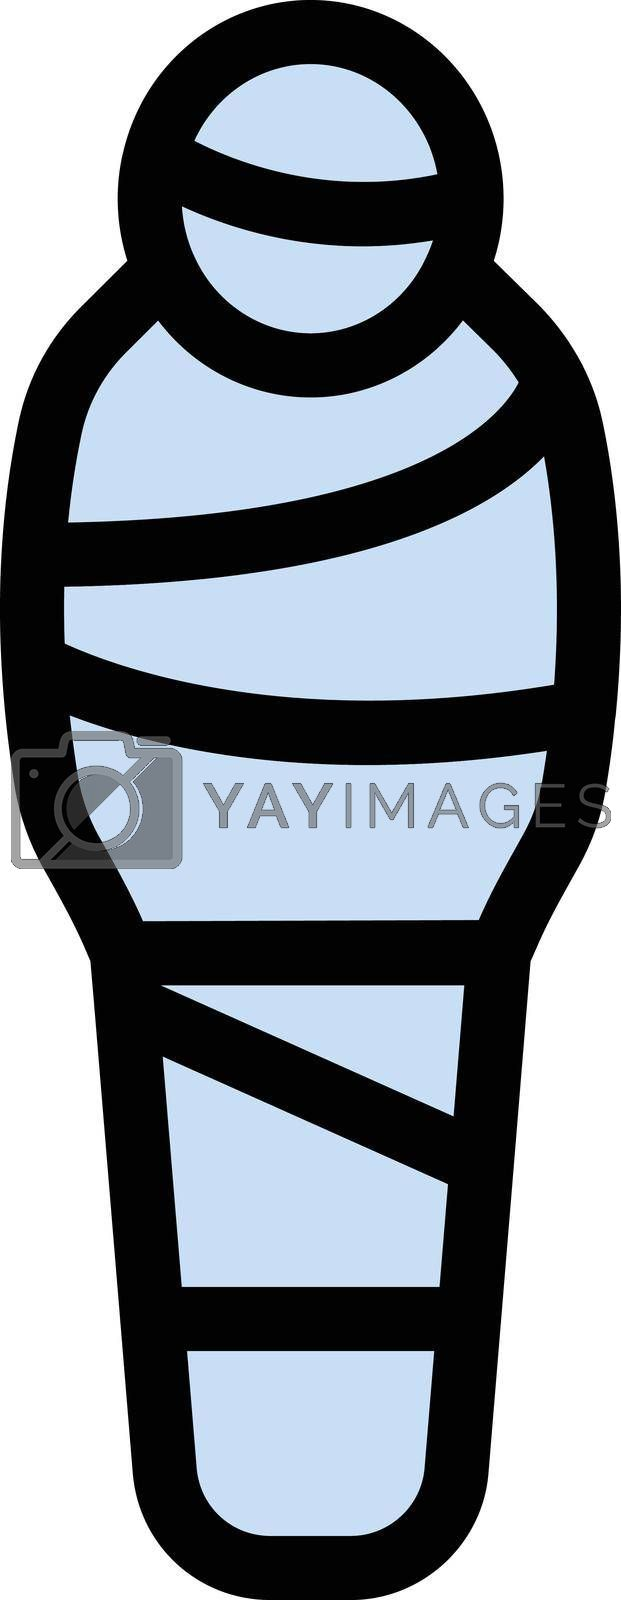 Royalty free image of mummy by vectorstall